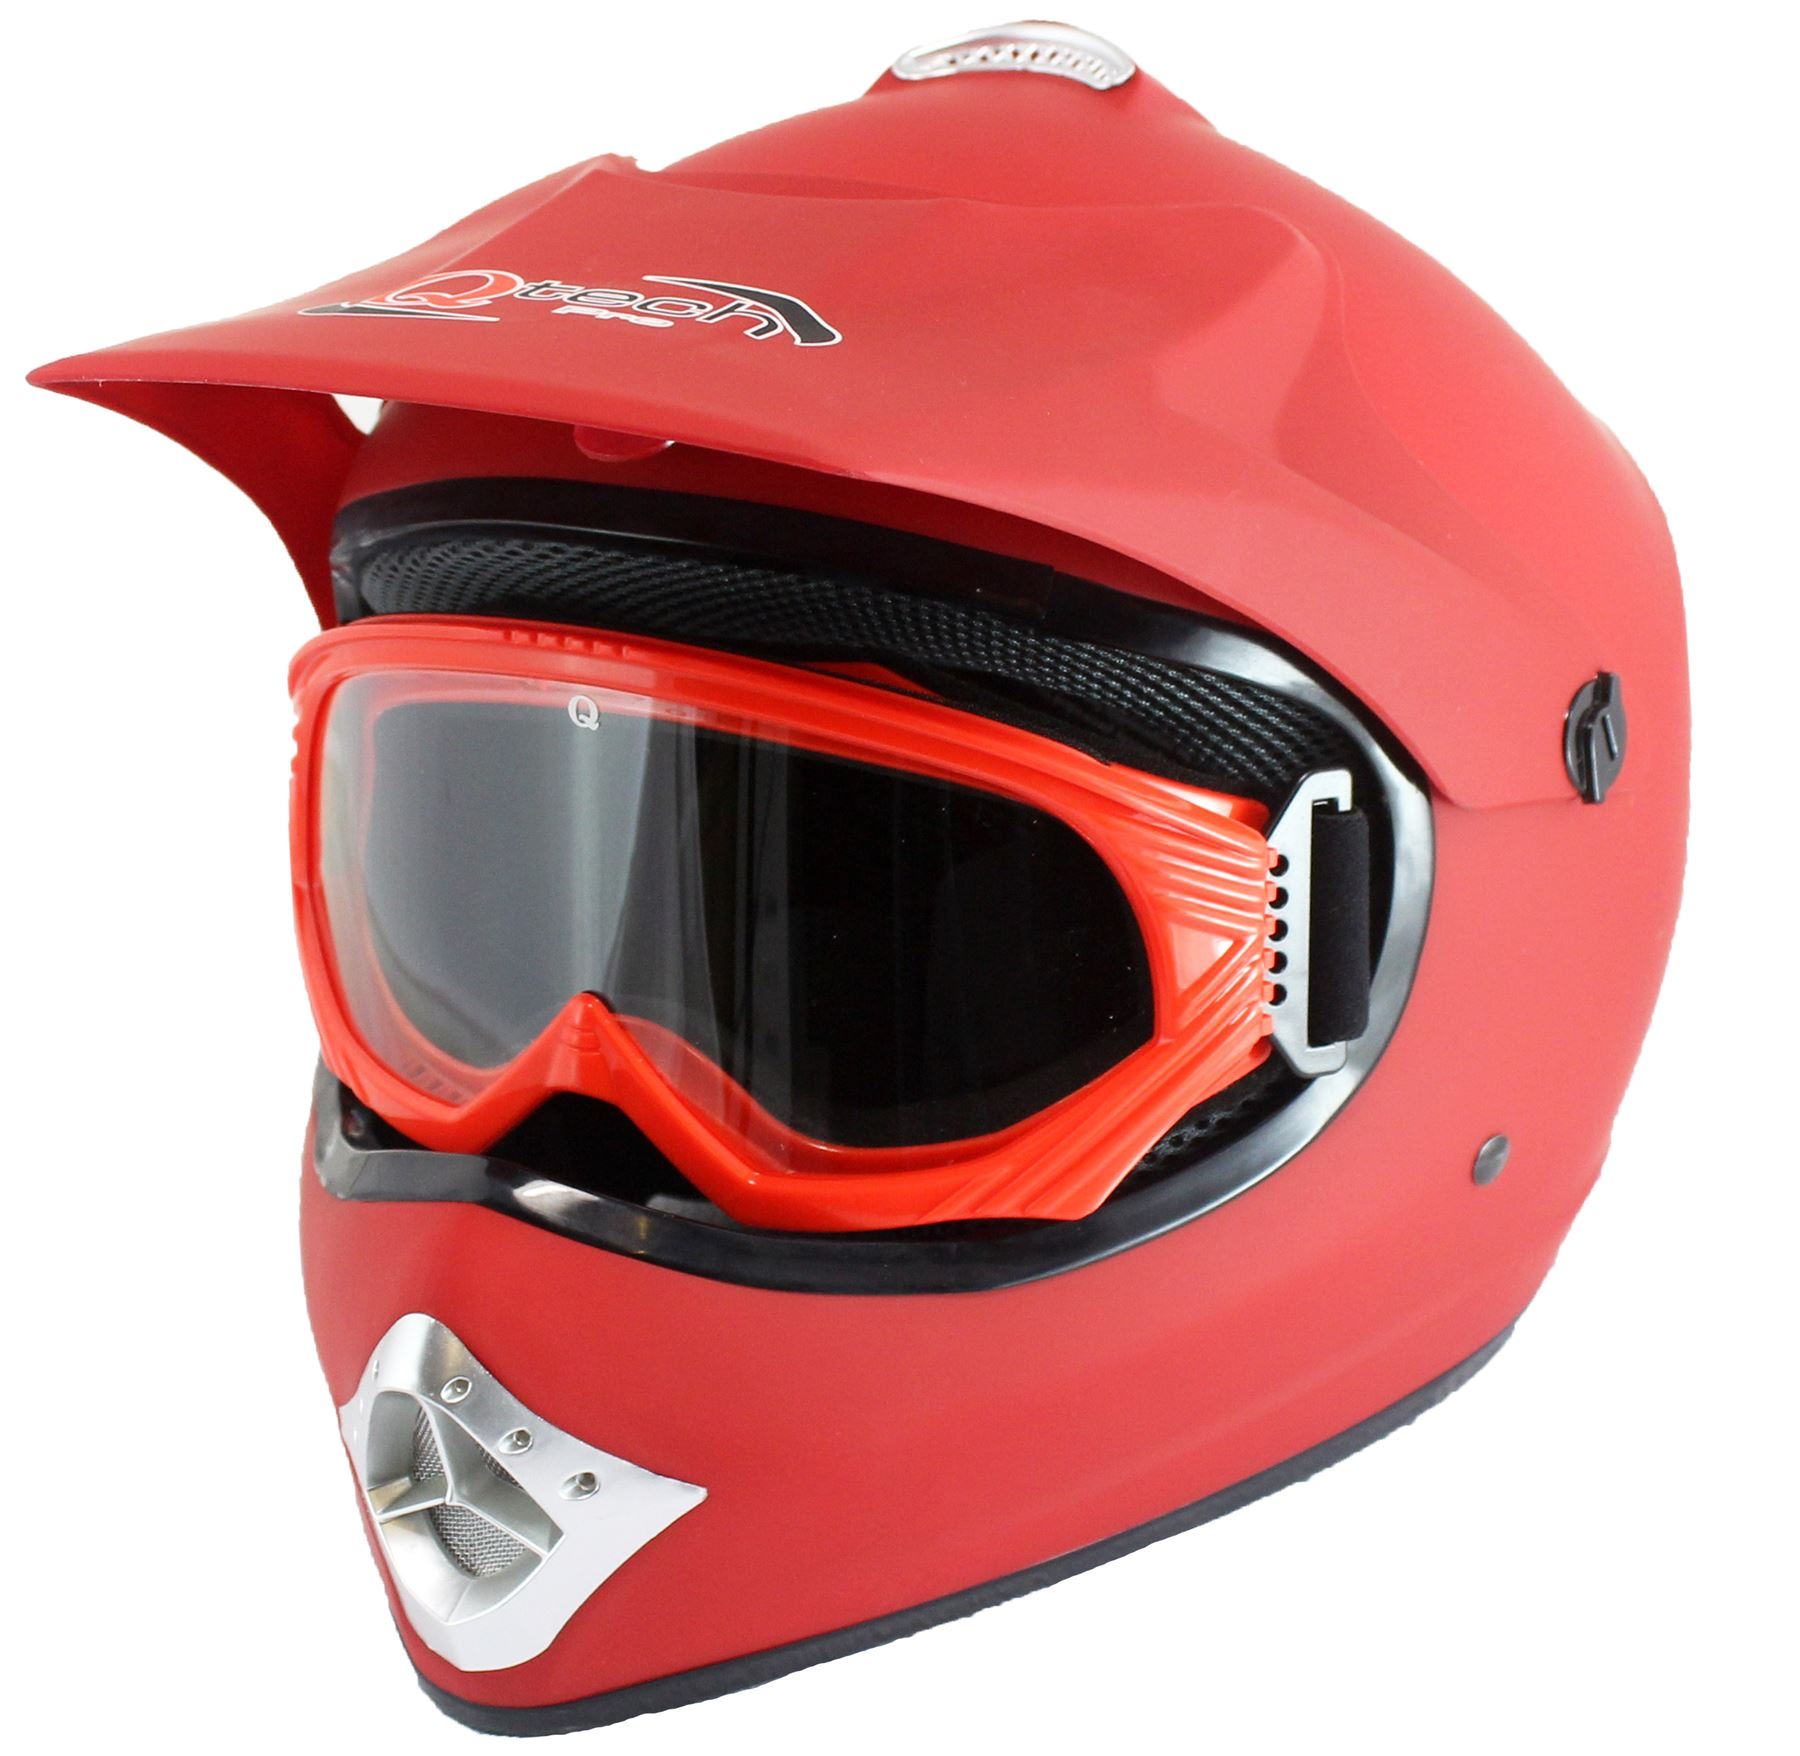 kinder motocross helm brille offroad atv schwarz rot. Black Bedroom Furniture Sets. Home Design Ideas